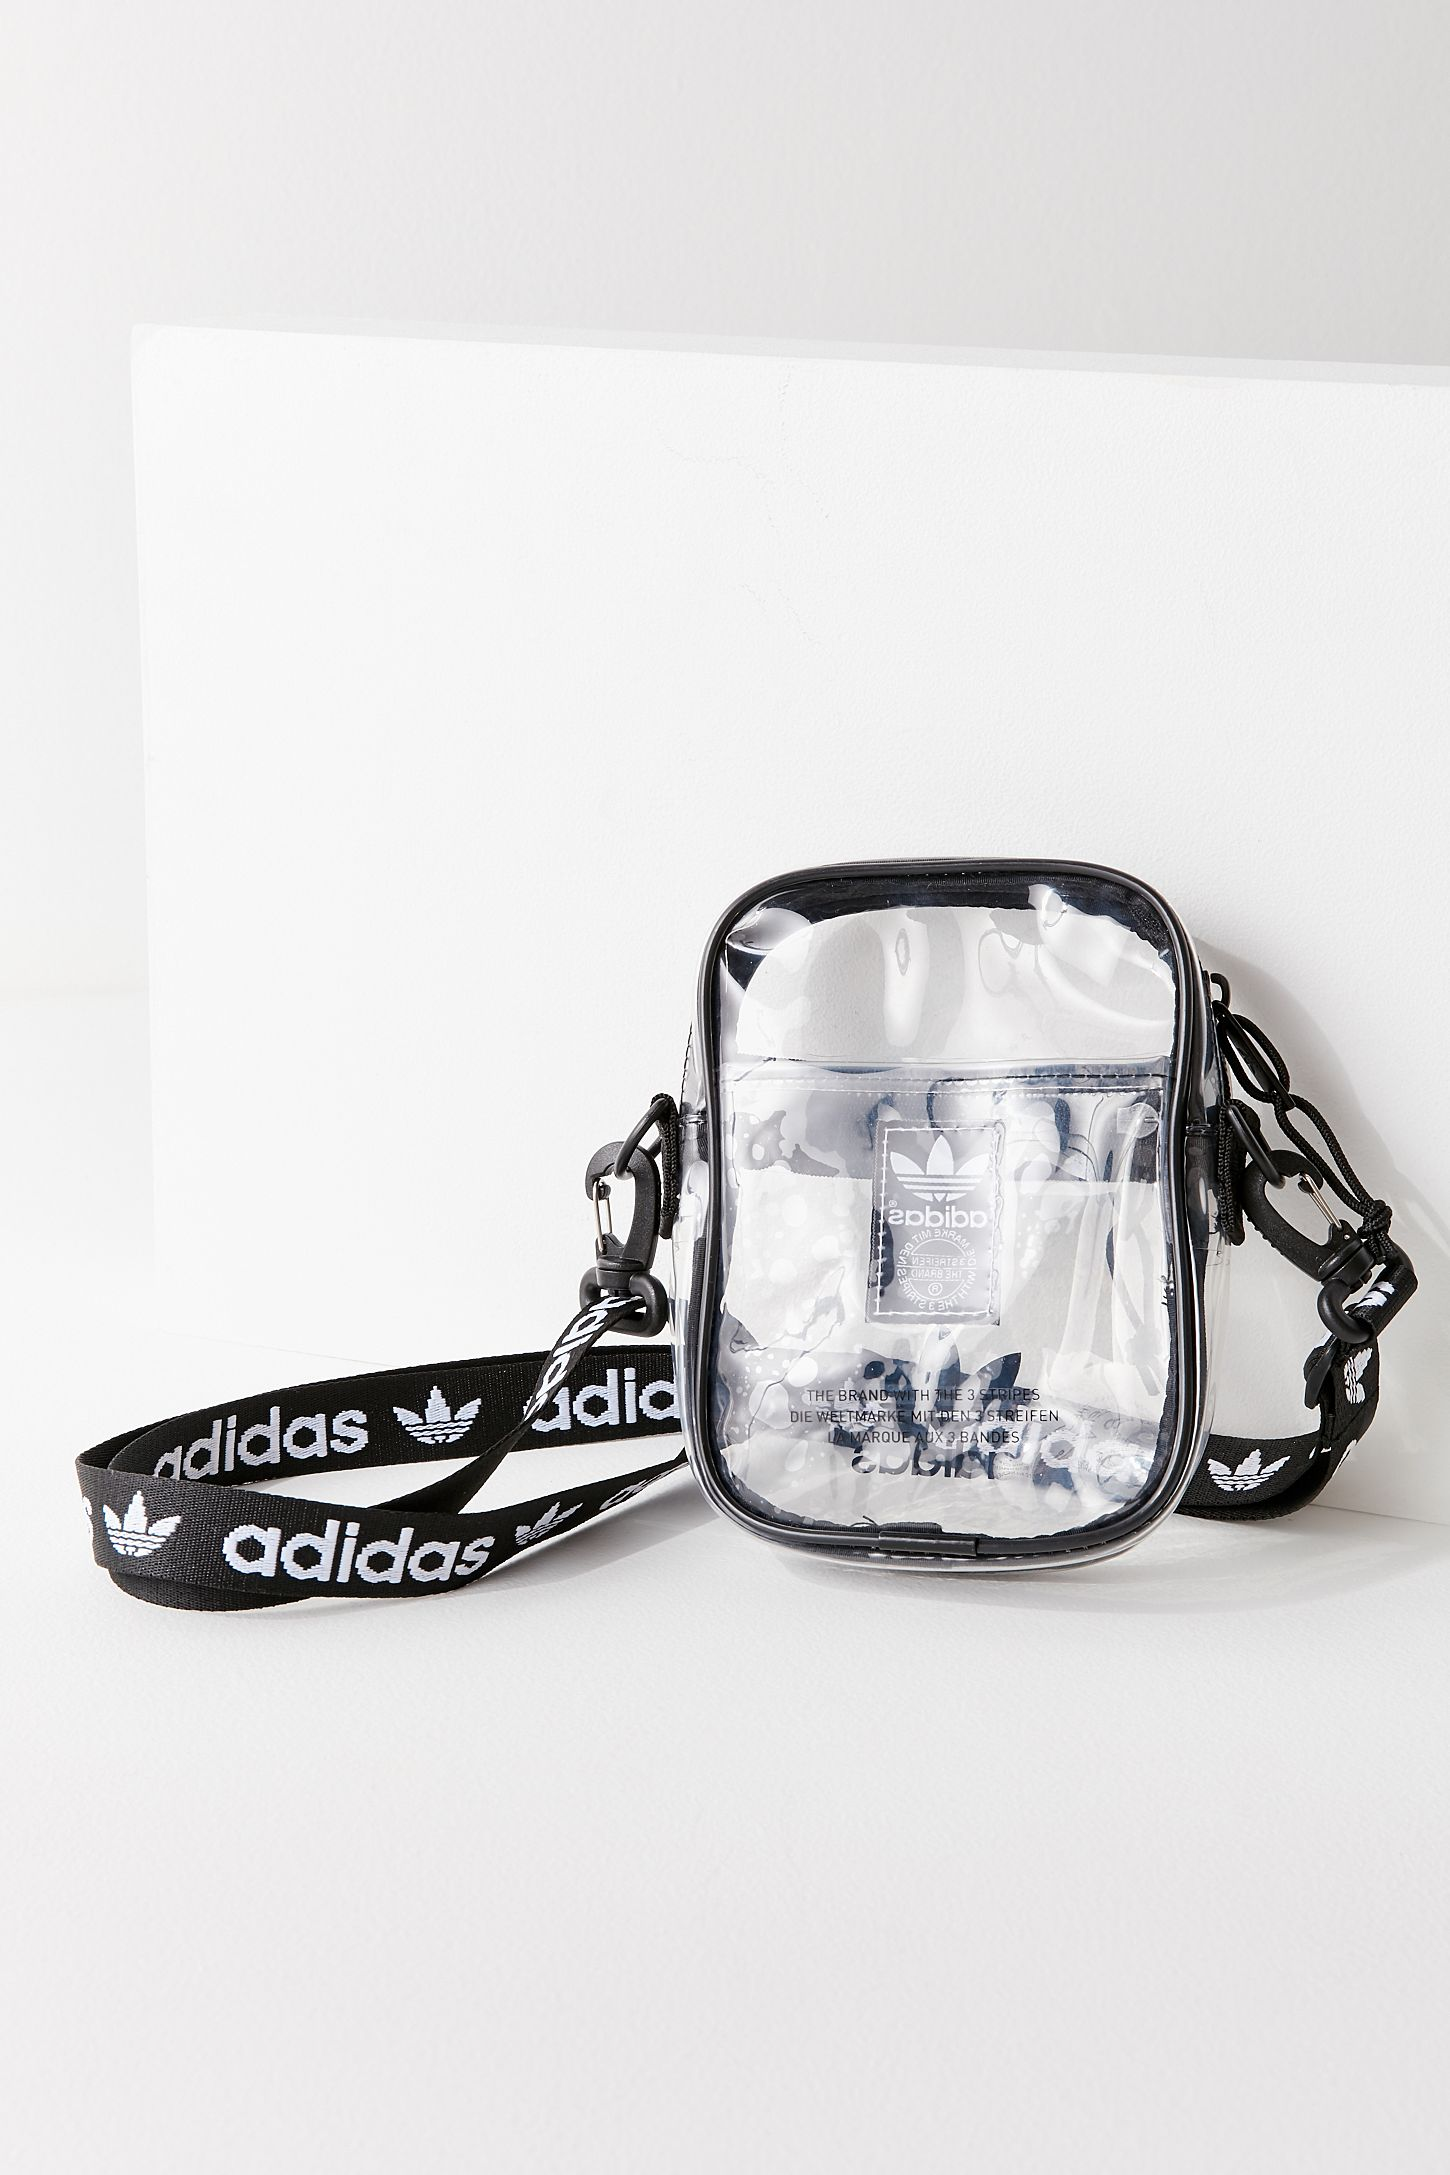 1bcd87a3a15 adidas Originals Clear Festival Crossbody Bag | Urban Outfitters